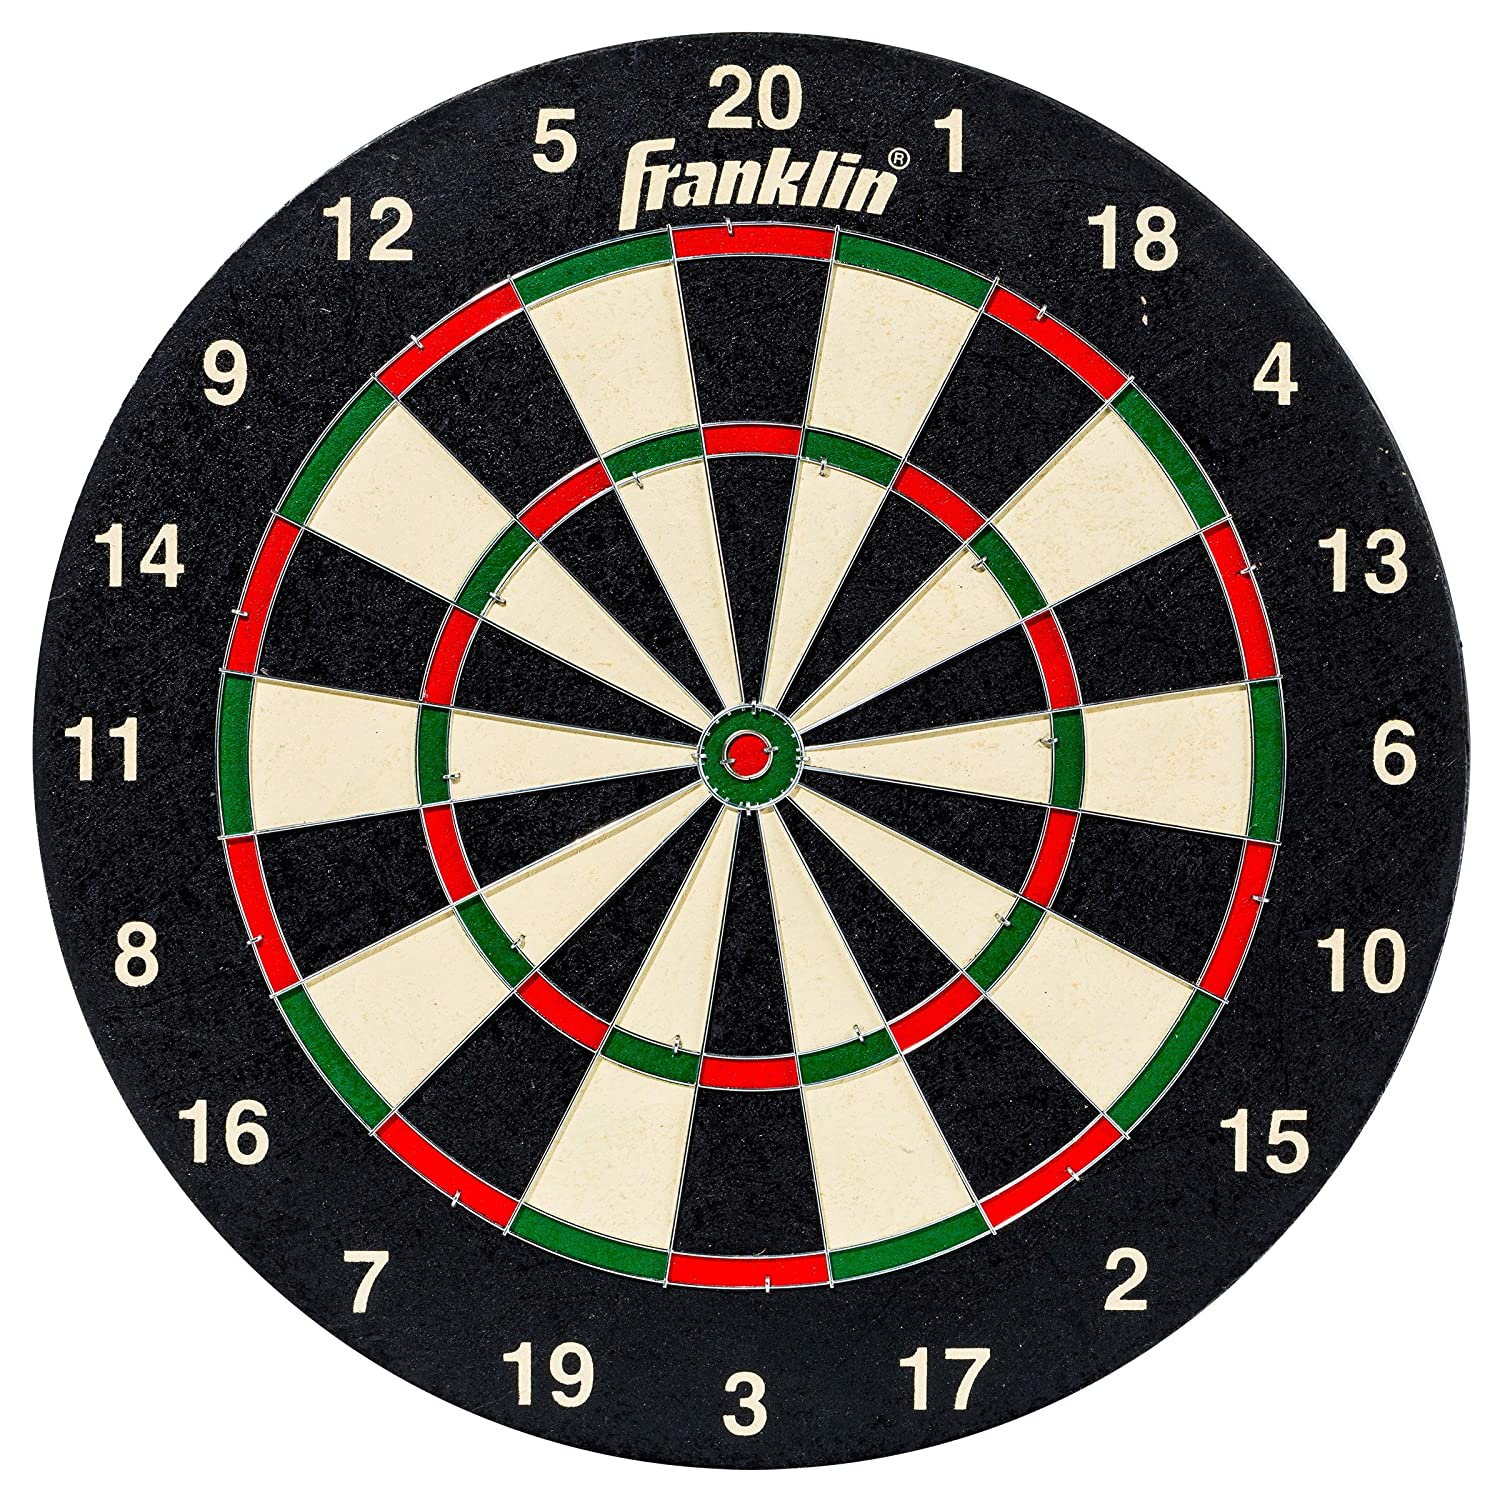 Franklin 18-inch Deluxe Bristle Dartboard with Printed Number Ring